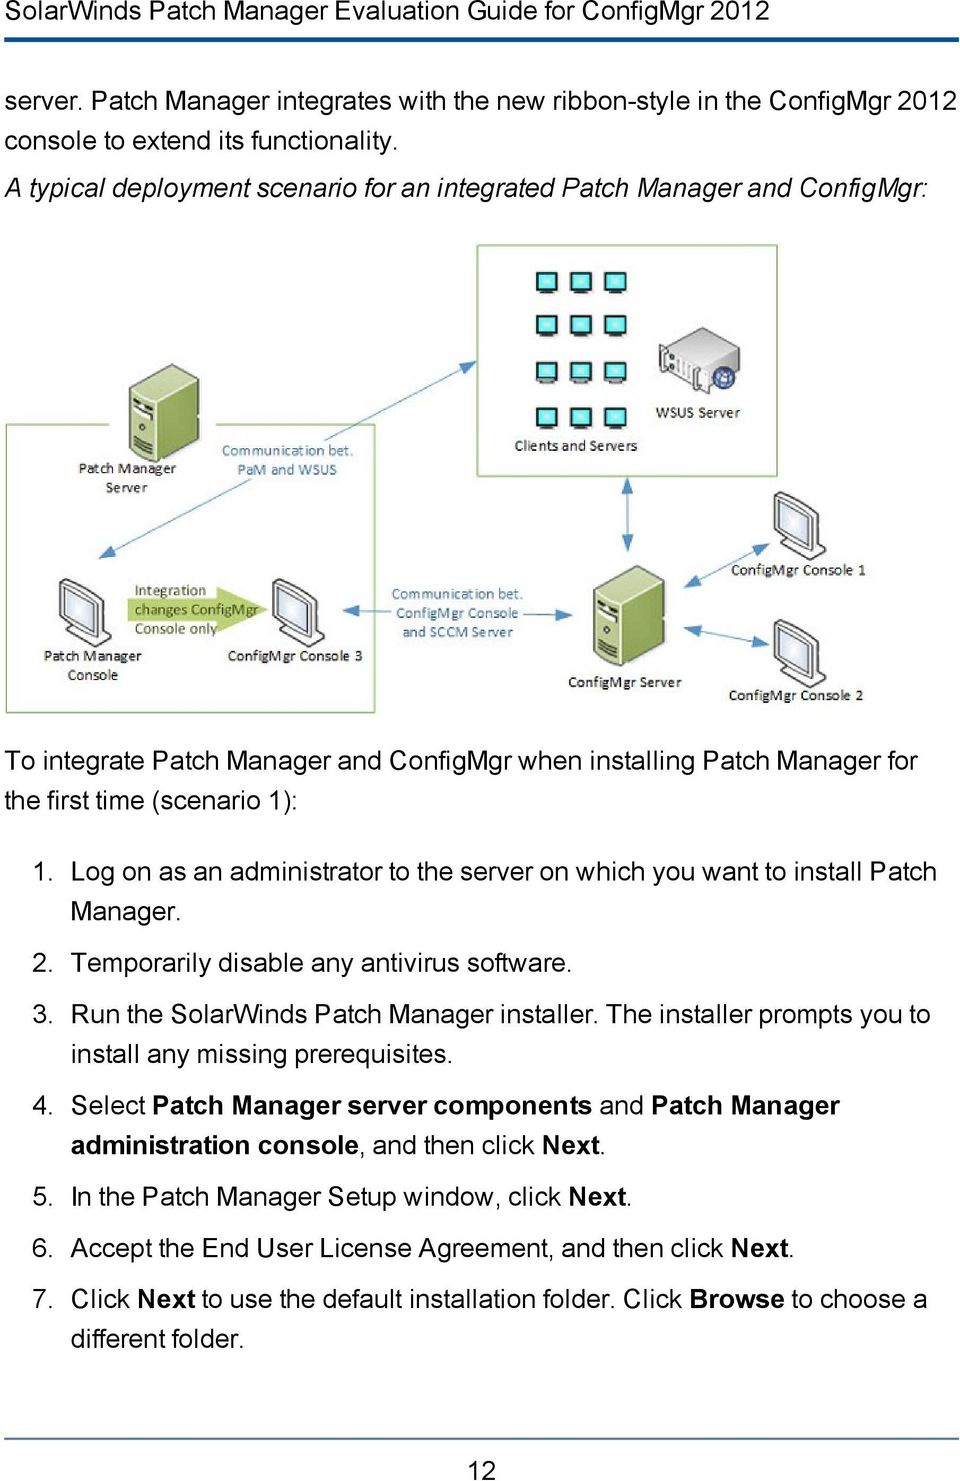 Log on as an administrator to the server on which you want to install Patch Manager. 2. Temporarily disable any antivirus software. 3. Run the SolarWinds Patch Manager installer.